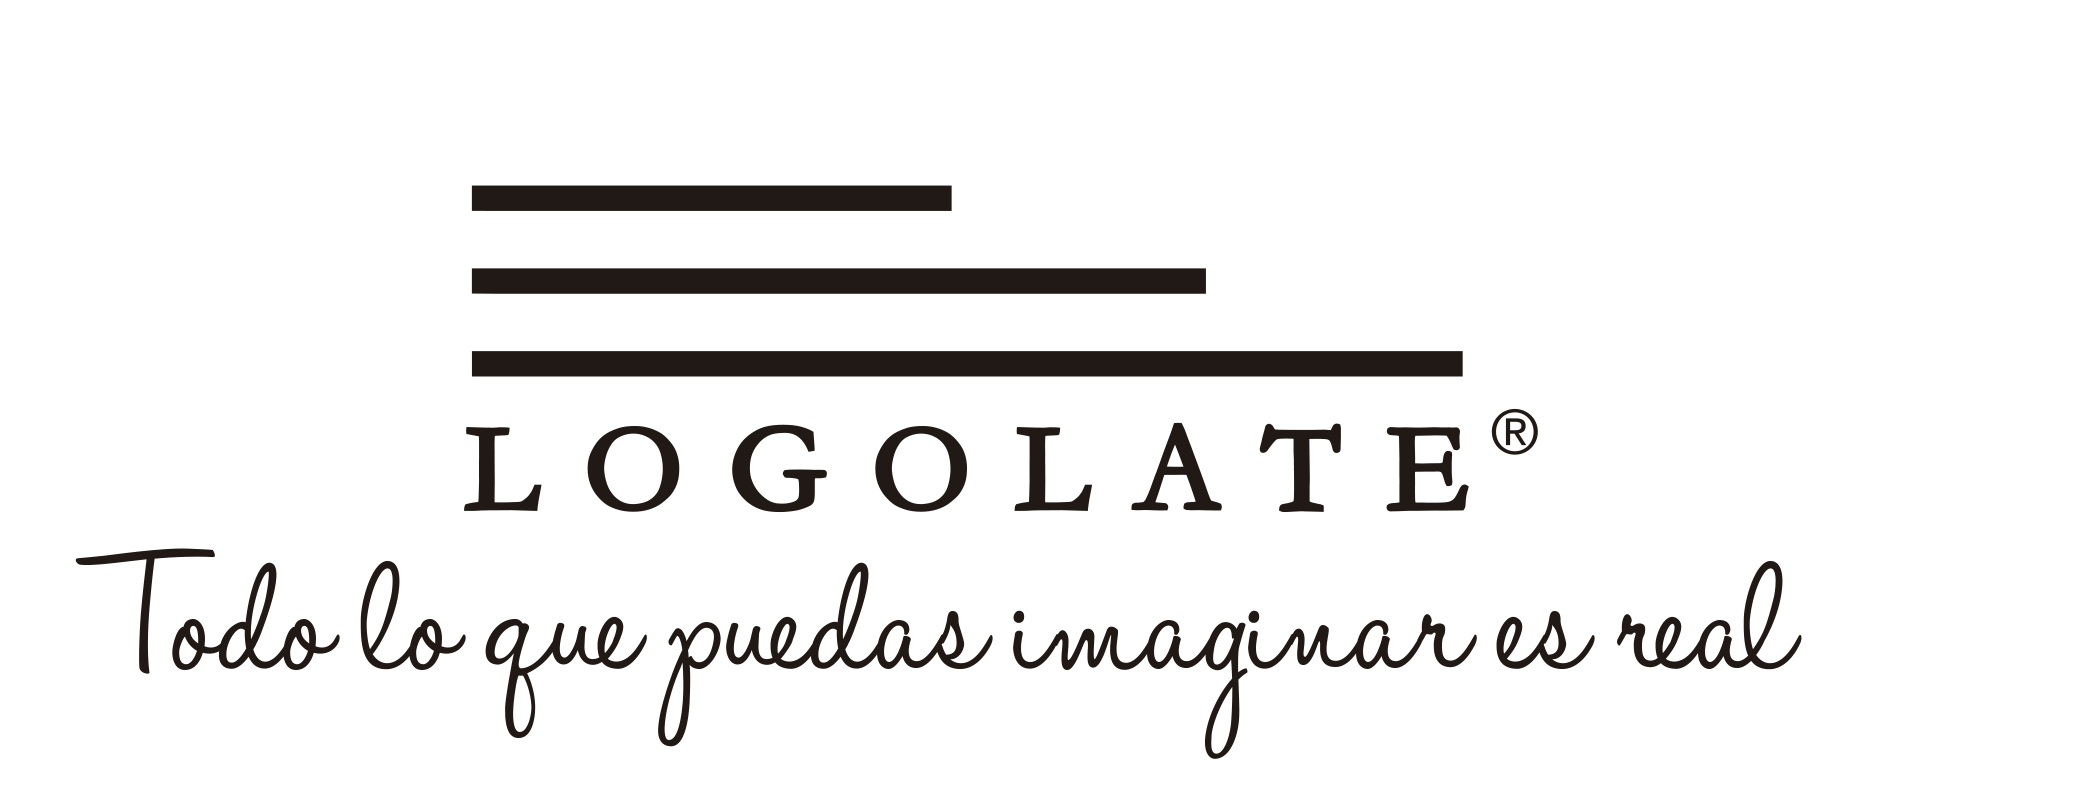 Chocolates Personalizados | Logolate S.L.